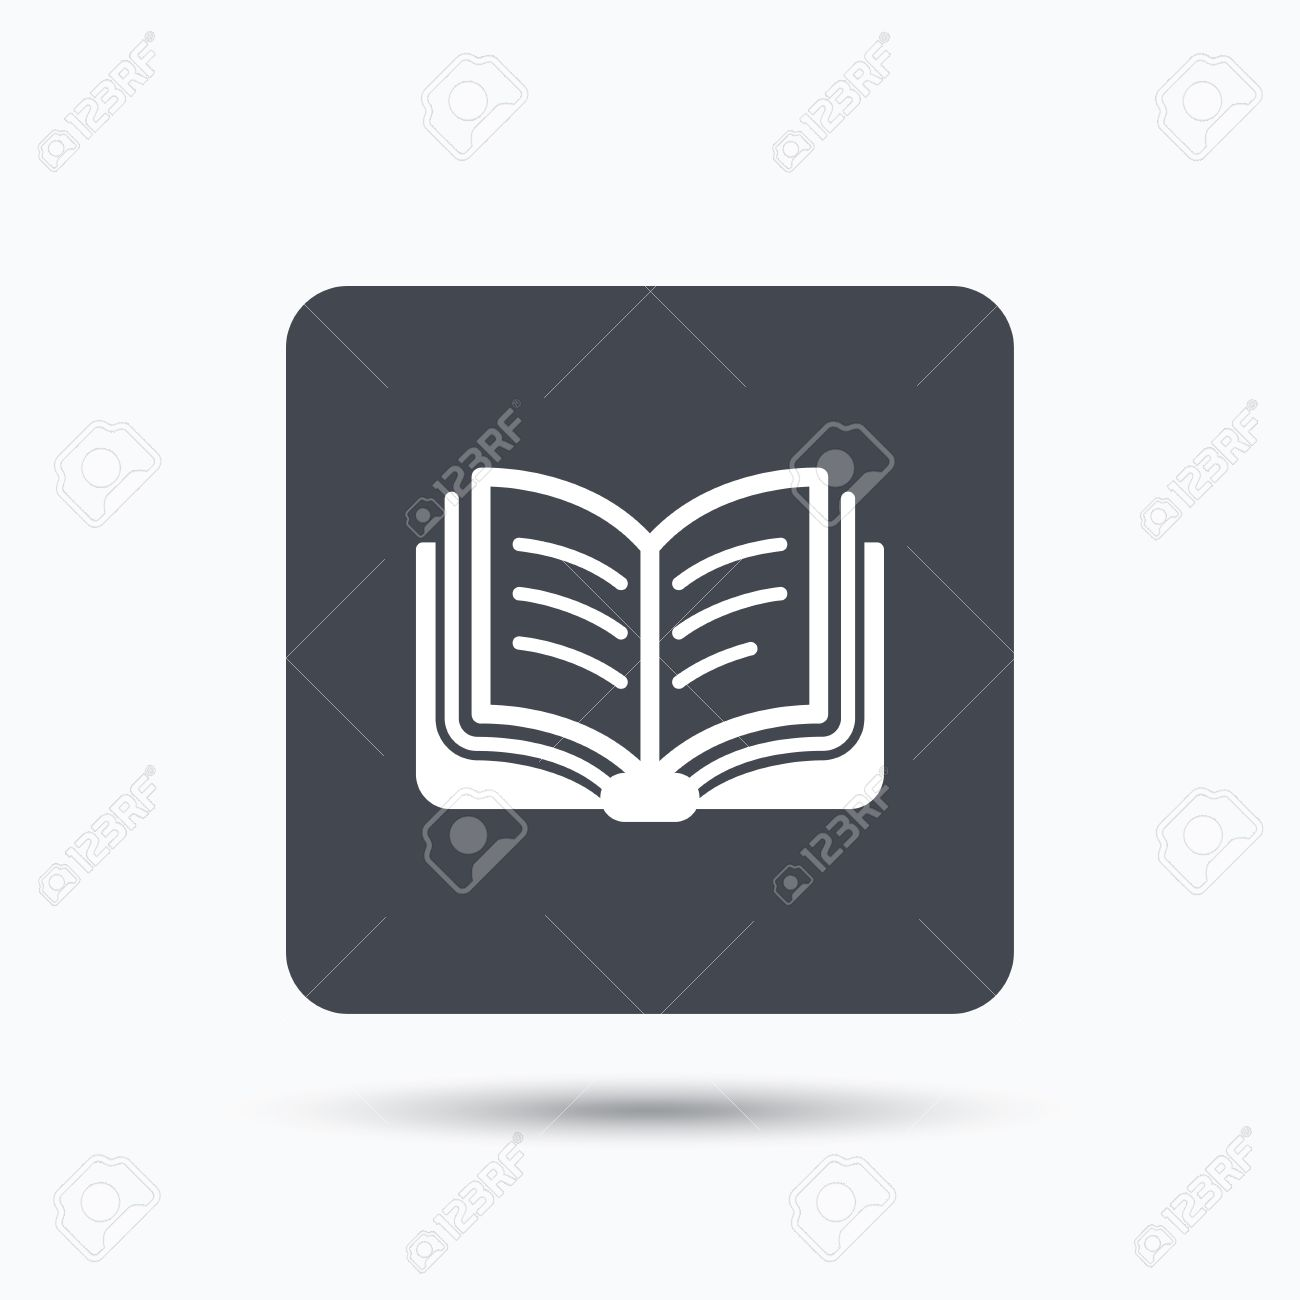 book icon study literature sign education textbook symbol study literature sign education textbook symbol gray square button flat